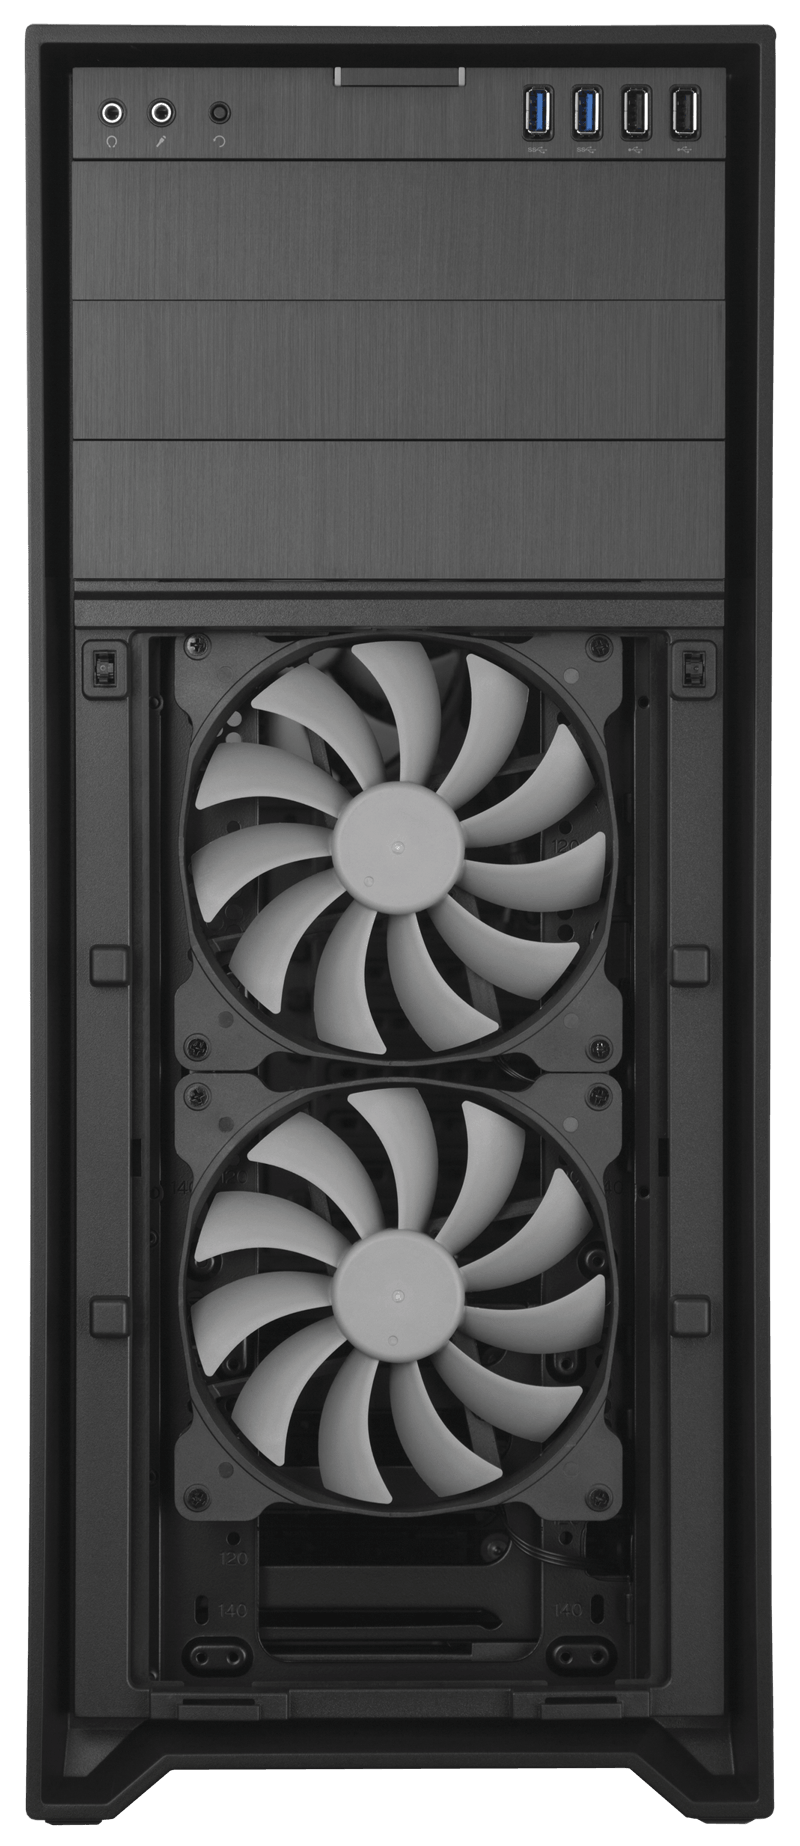 http://cwsmgmt.corsair.com/media/catalog/product/7/5/750d_front_view_fans.png